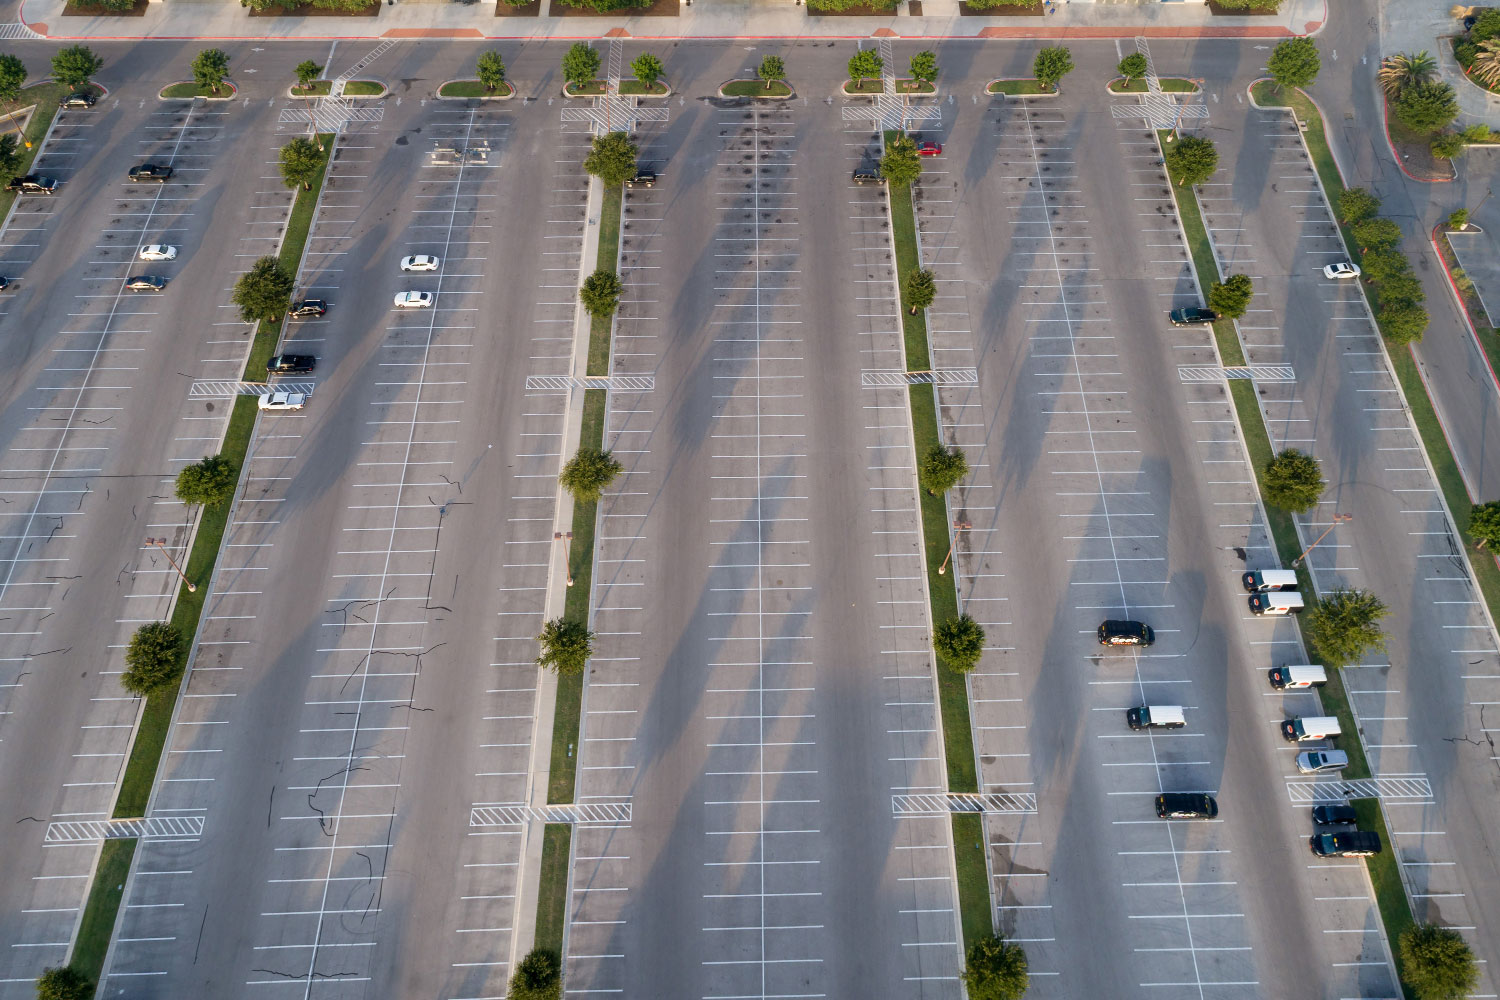 aerial parking lot that needs asphalt maintenance and striping